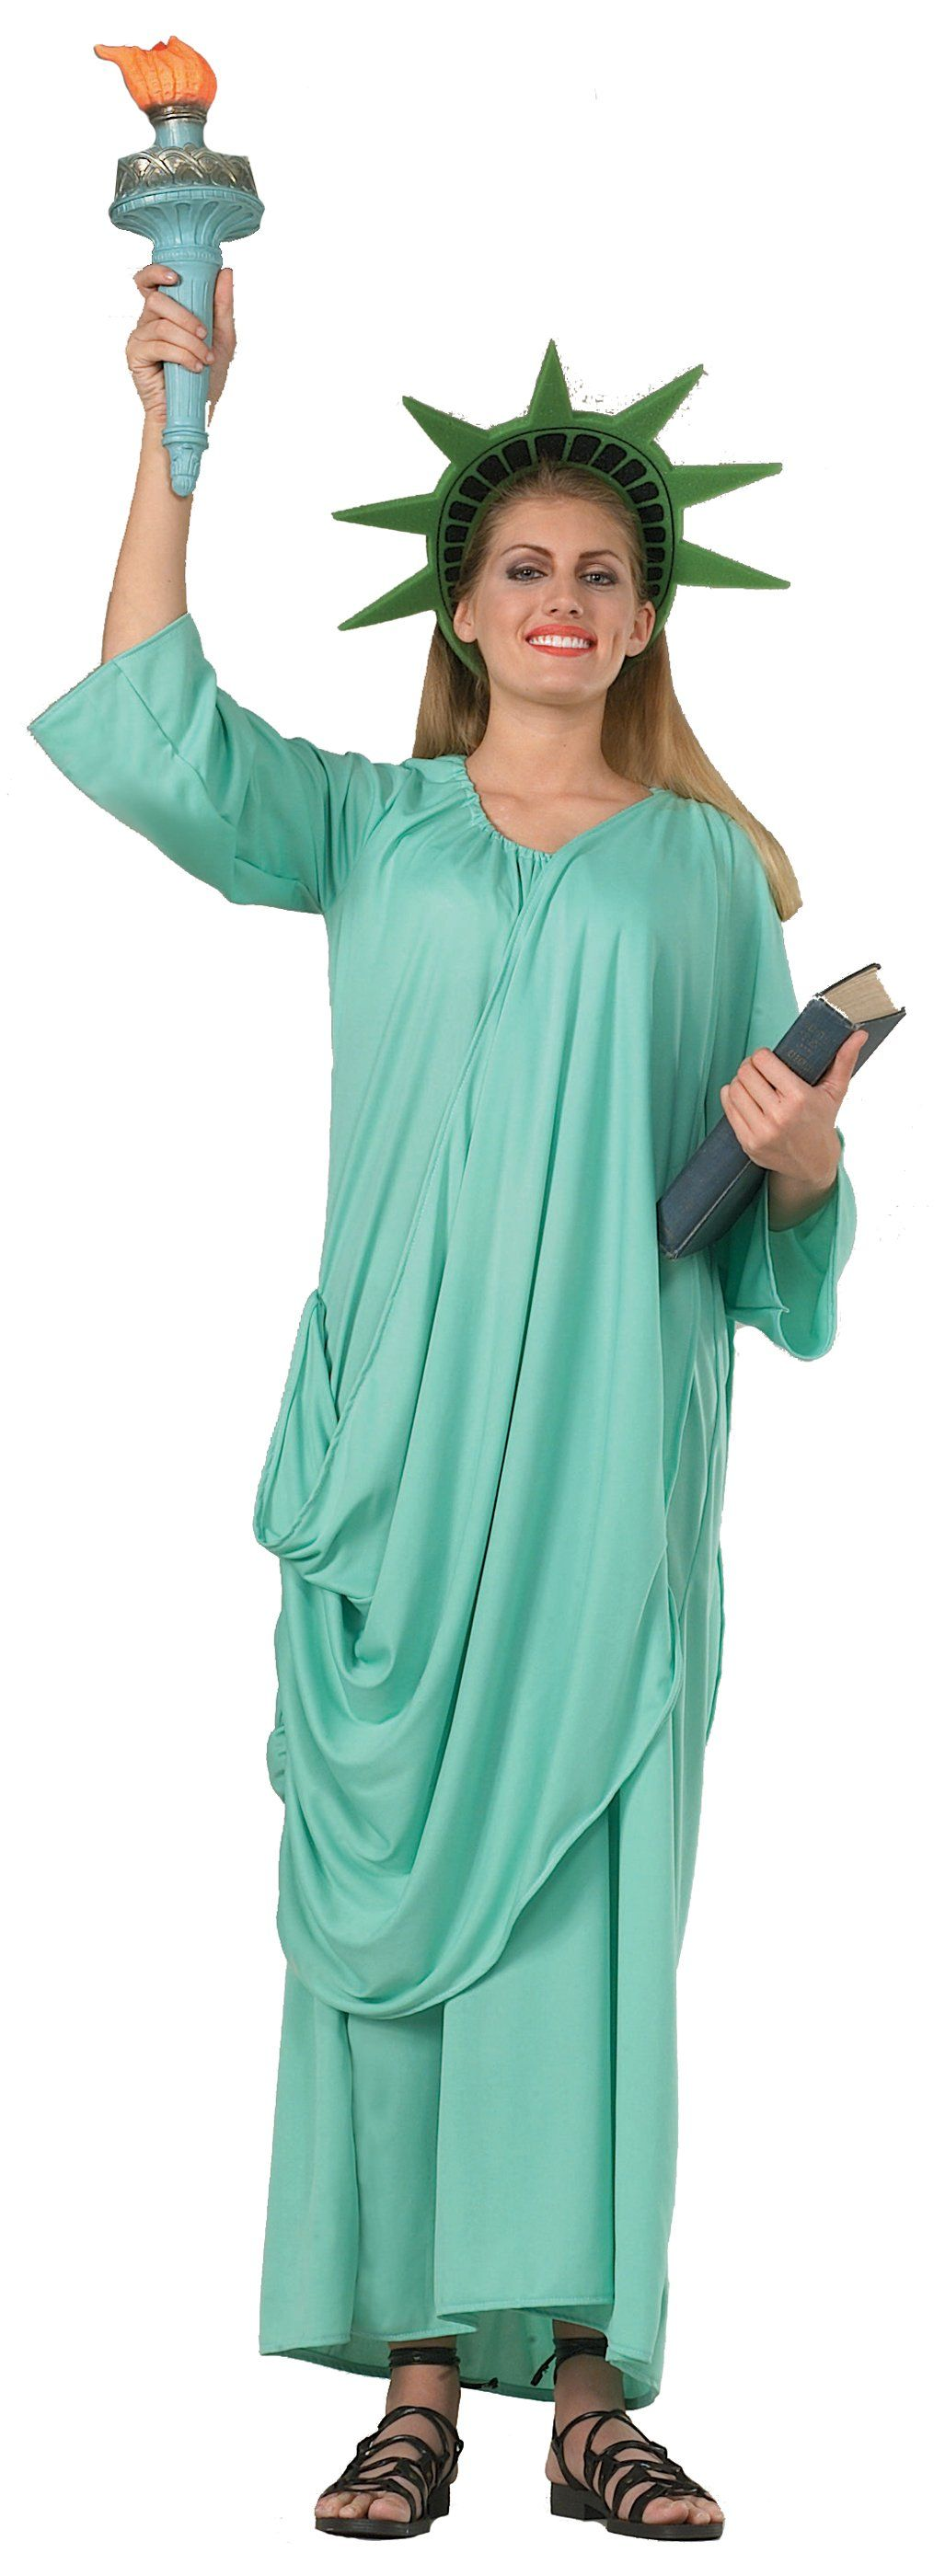 Statue Of Liberty Adult Costume | Costumes, Halloween costumes and ...